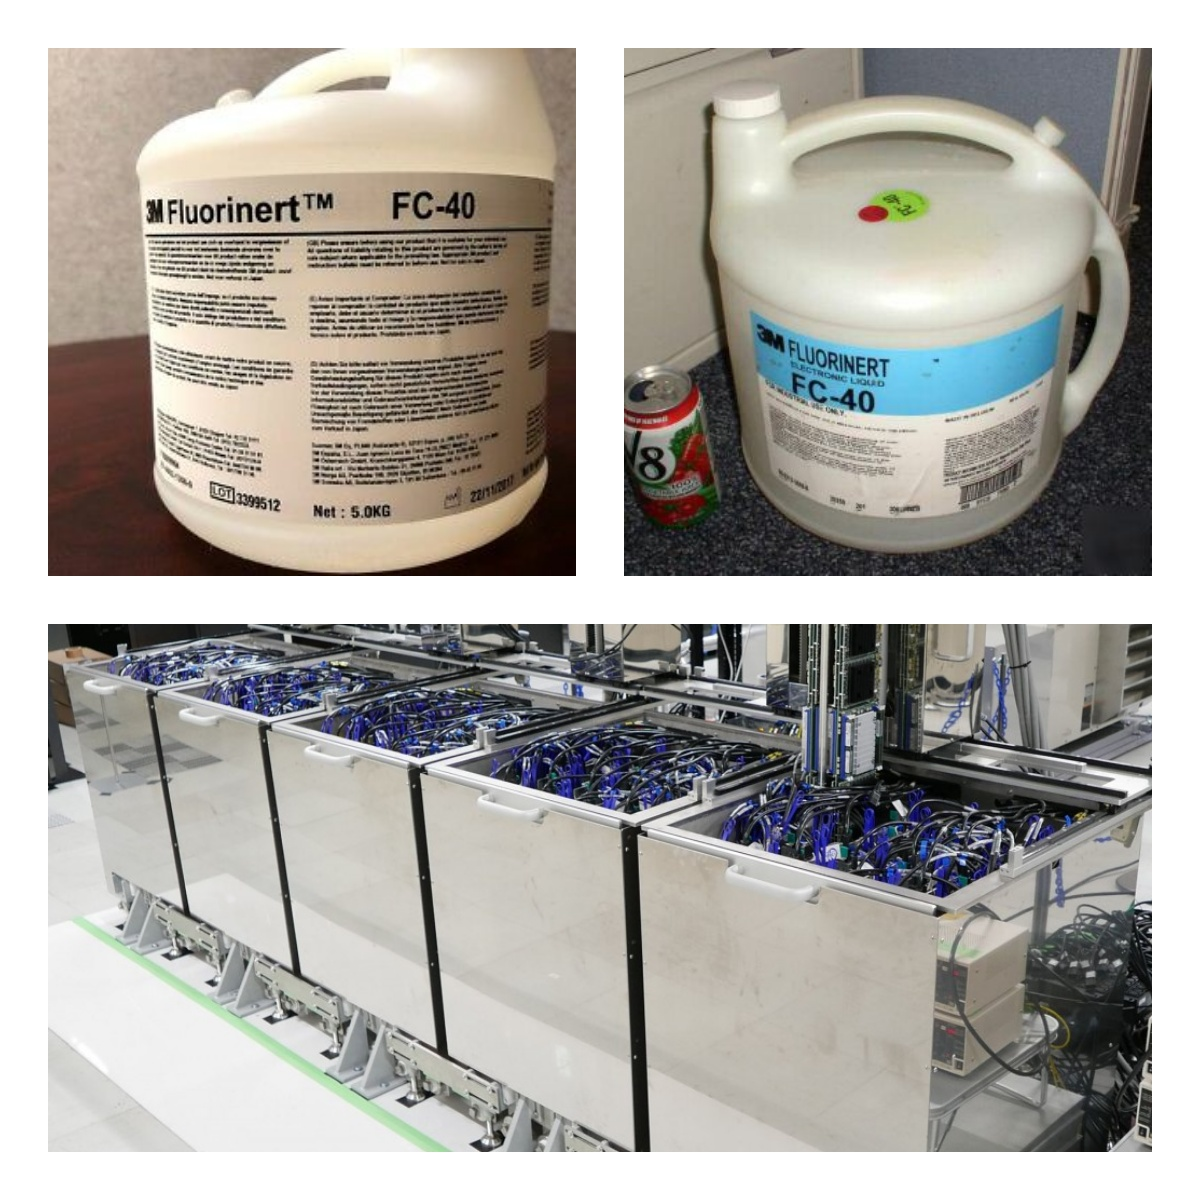 Novec and Coolant liquids comparison - why we stick to our